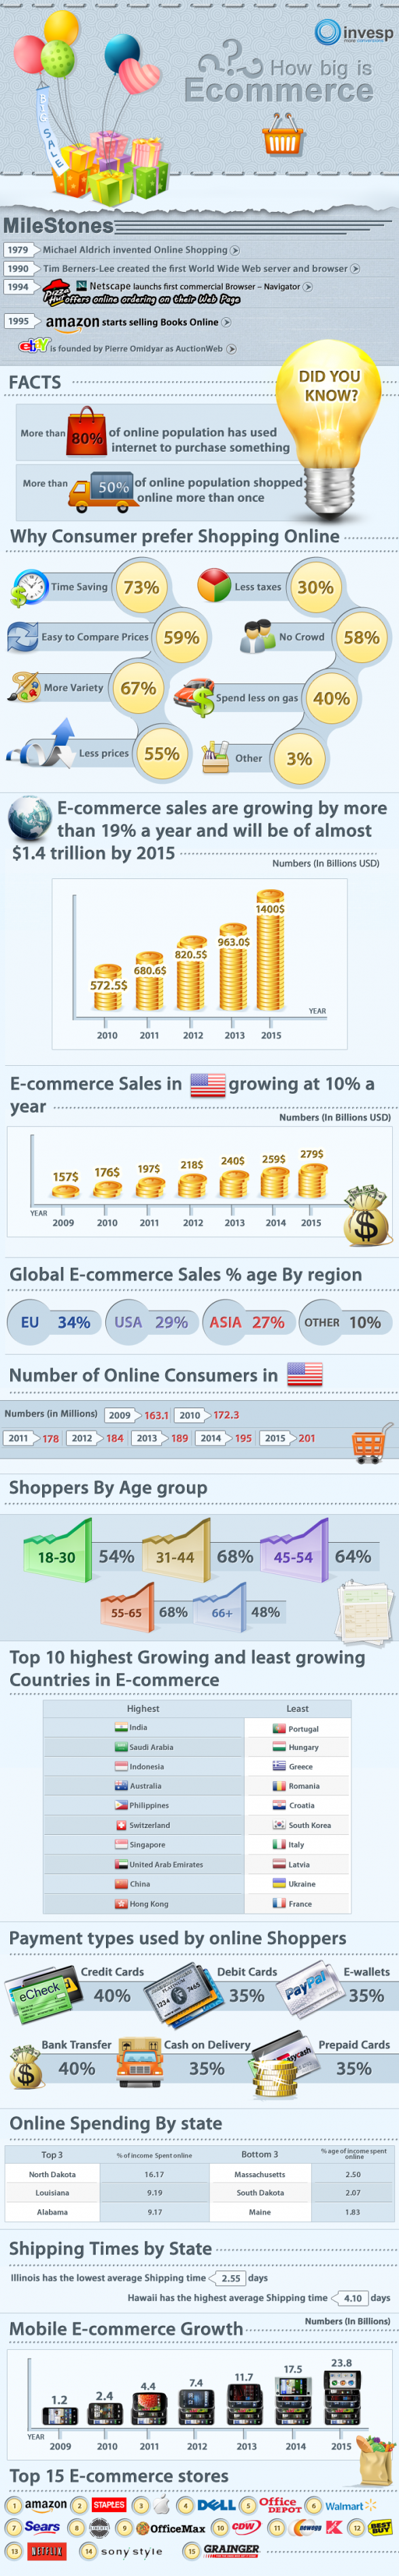 How Big is the E-commerce Industry?